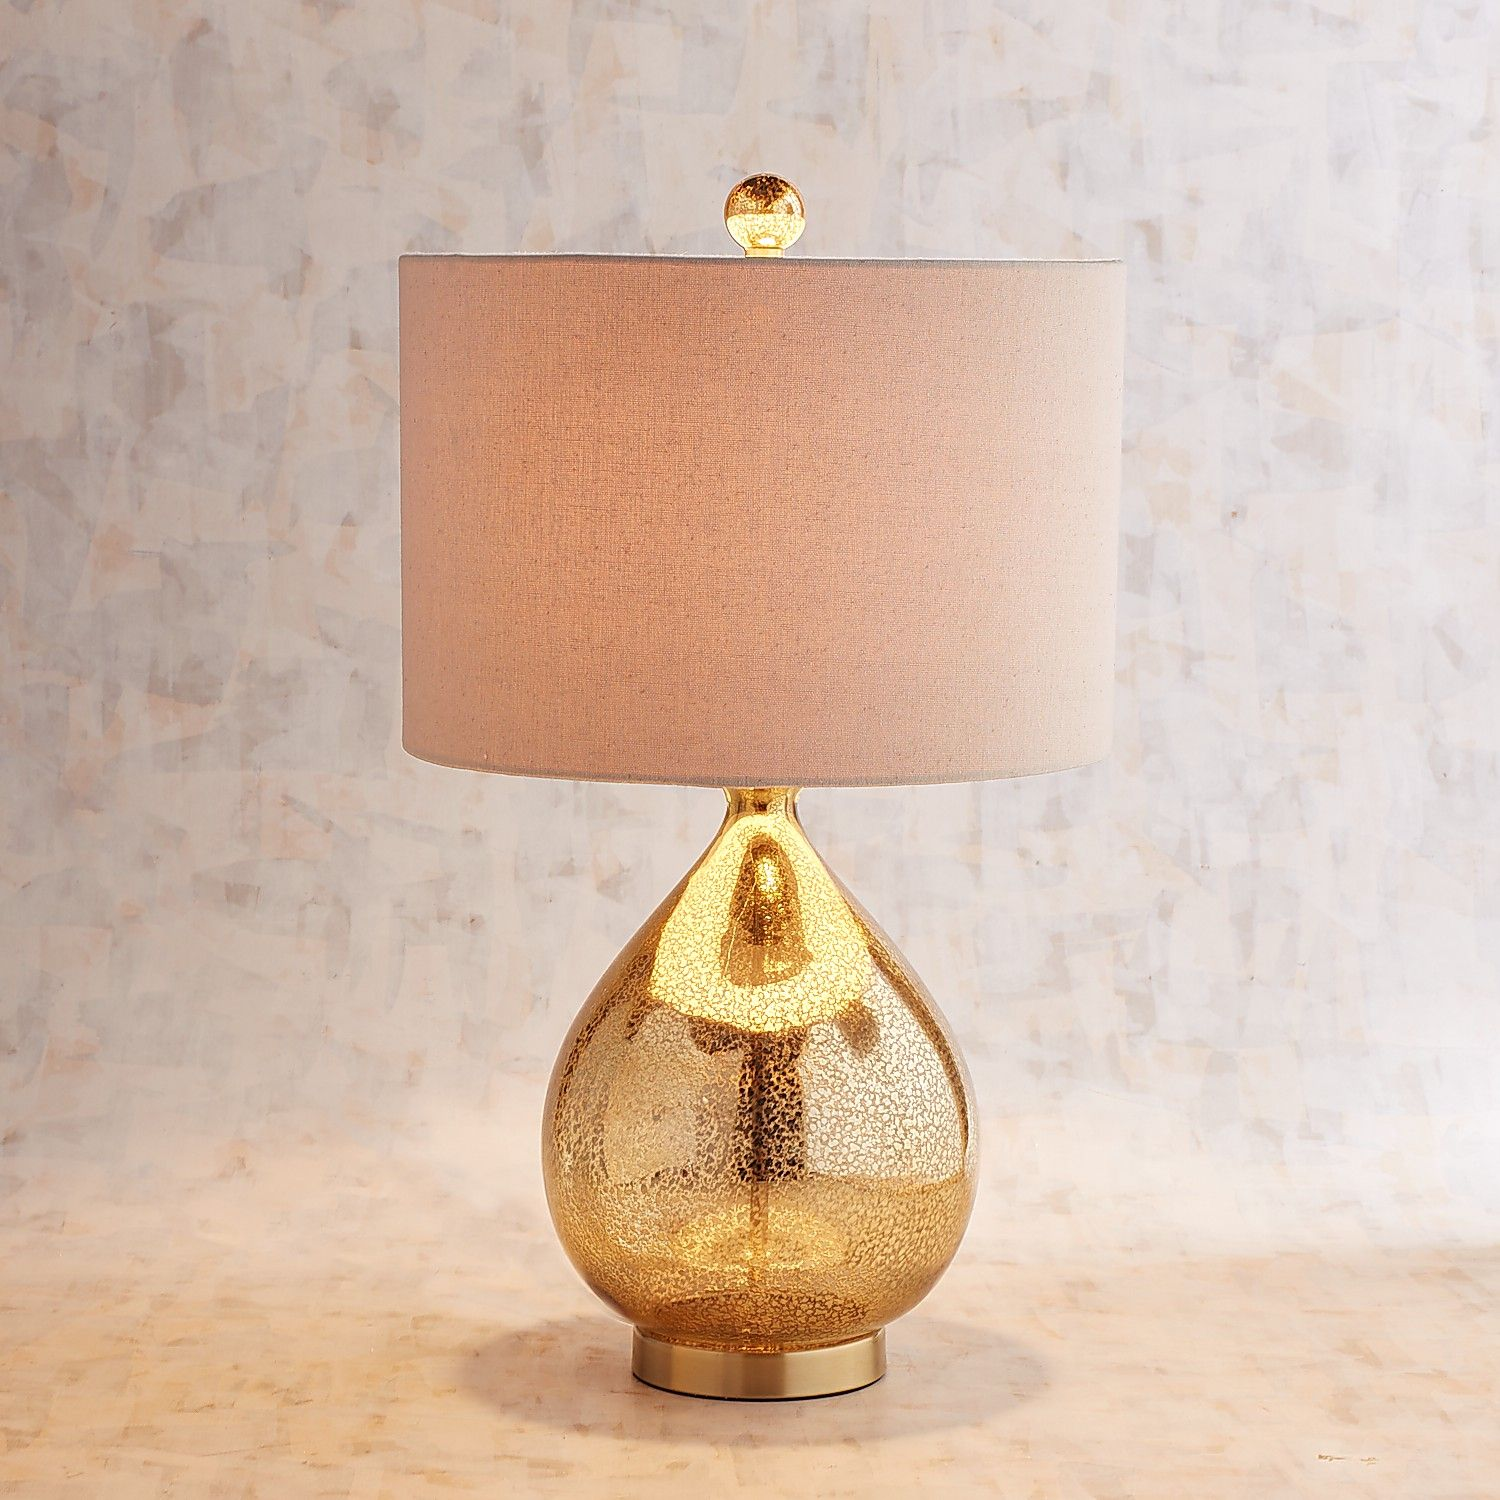 golden teardrop luxe table lamp pier imports one accent lamps that use batteries drop leaf with folding chair storage monarch console farm white legs glass mirror nightstand